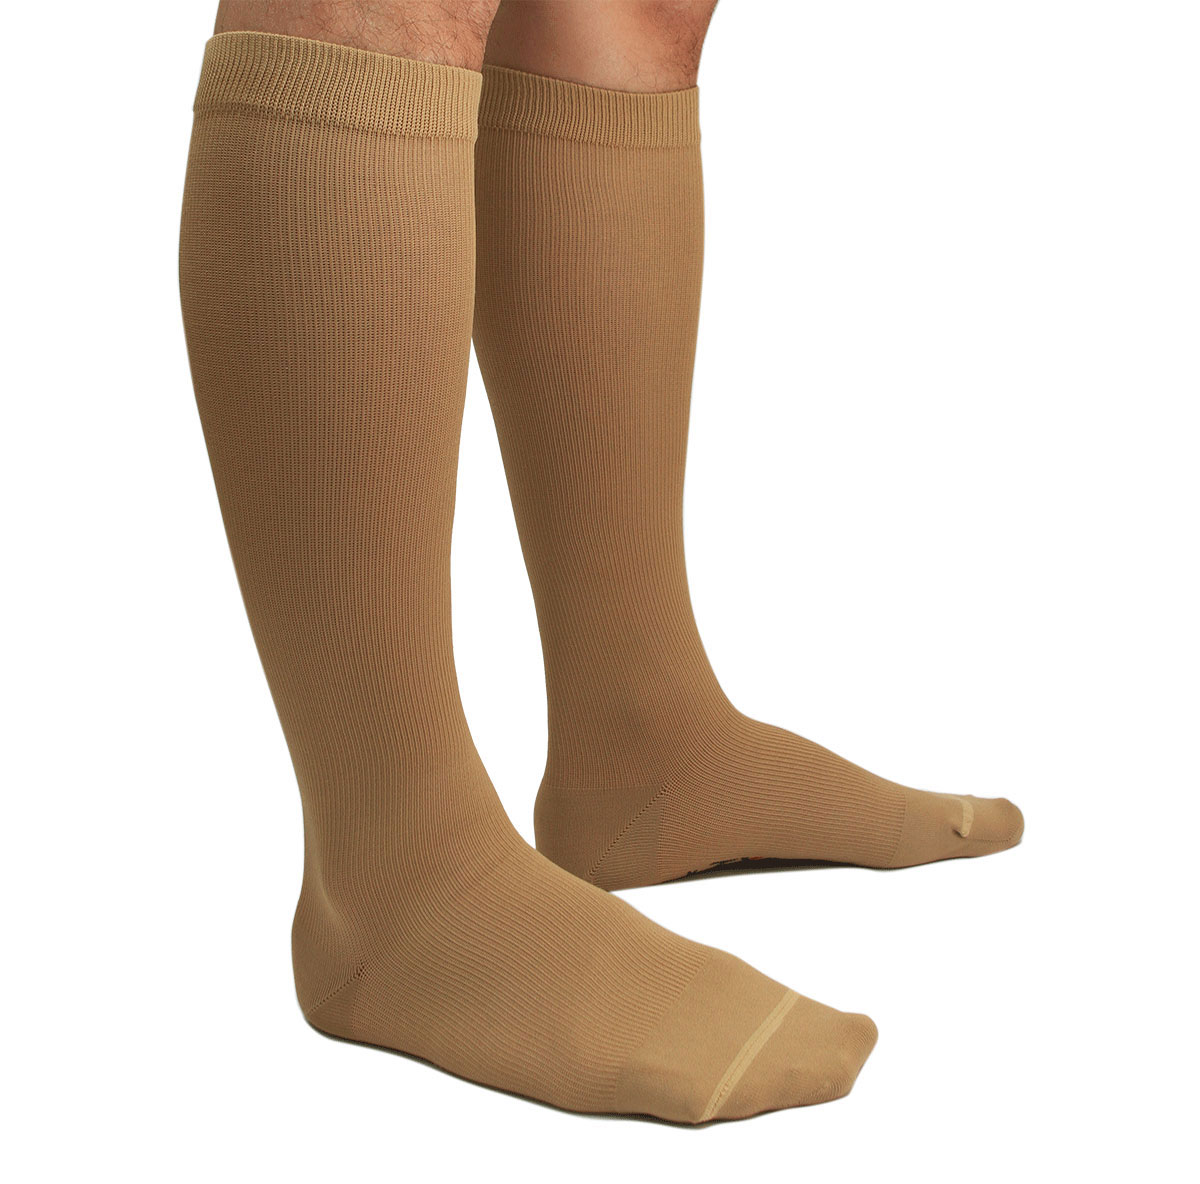 5889c35592a TXG Medical Compression Stockings – Classic Style